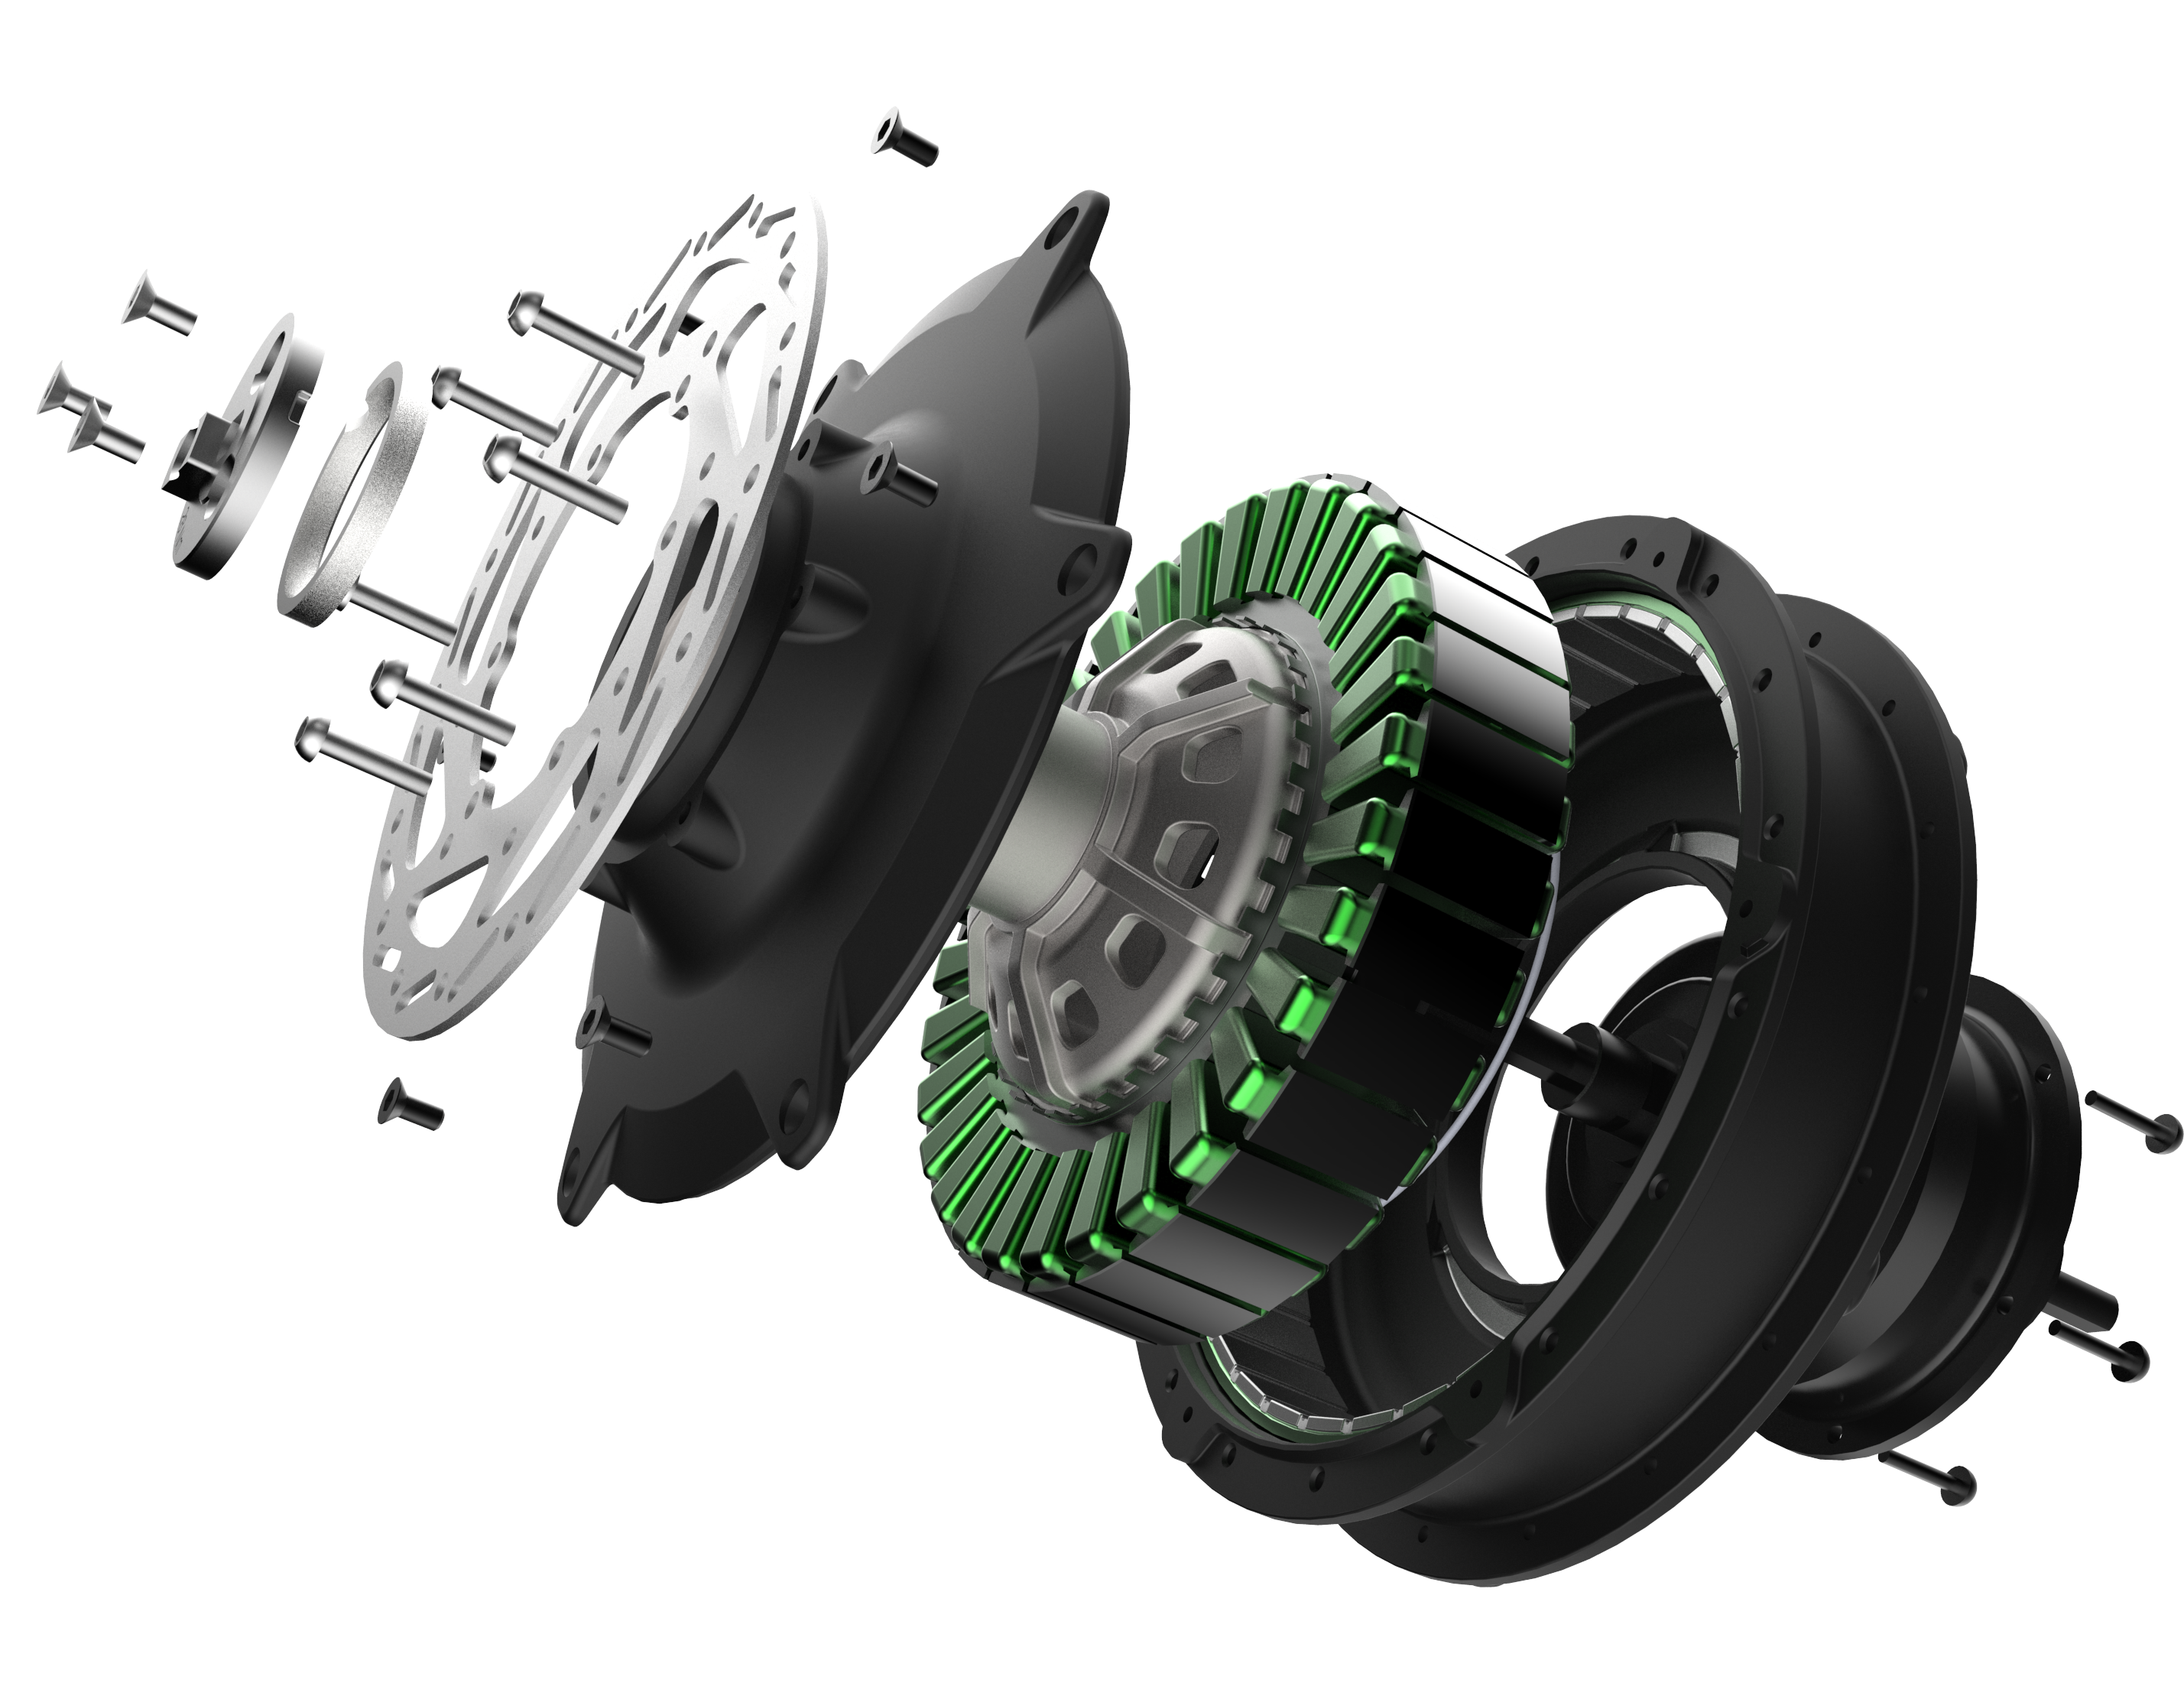 Accell Launches E Bike Motor With Integrated 5 Speed Gear